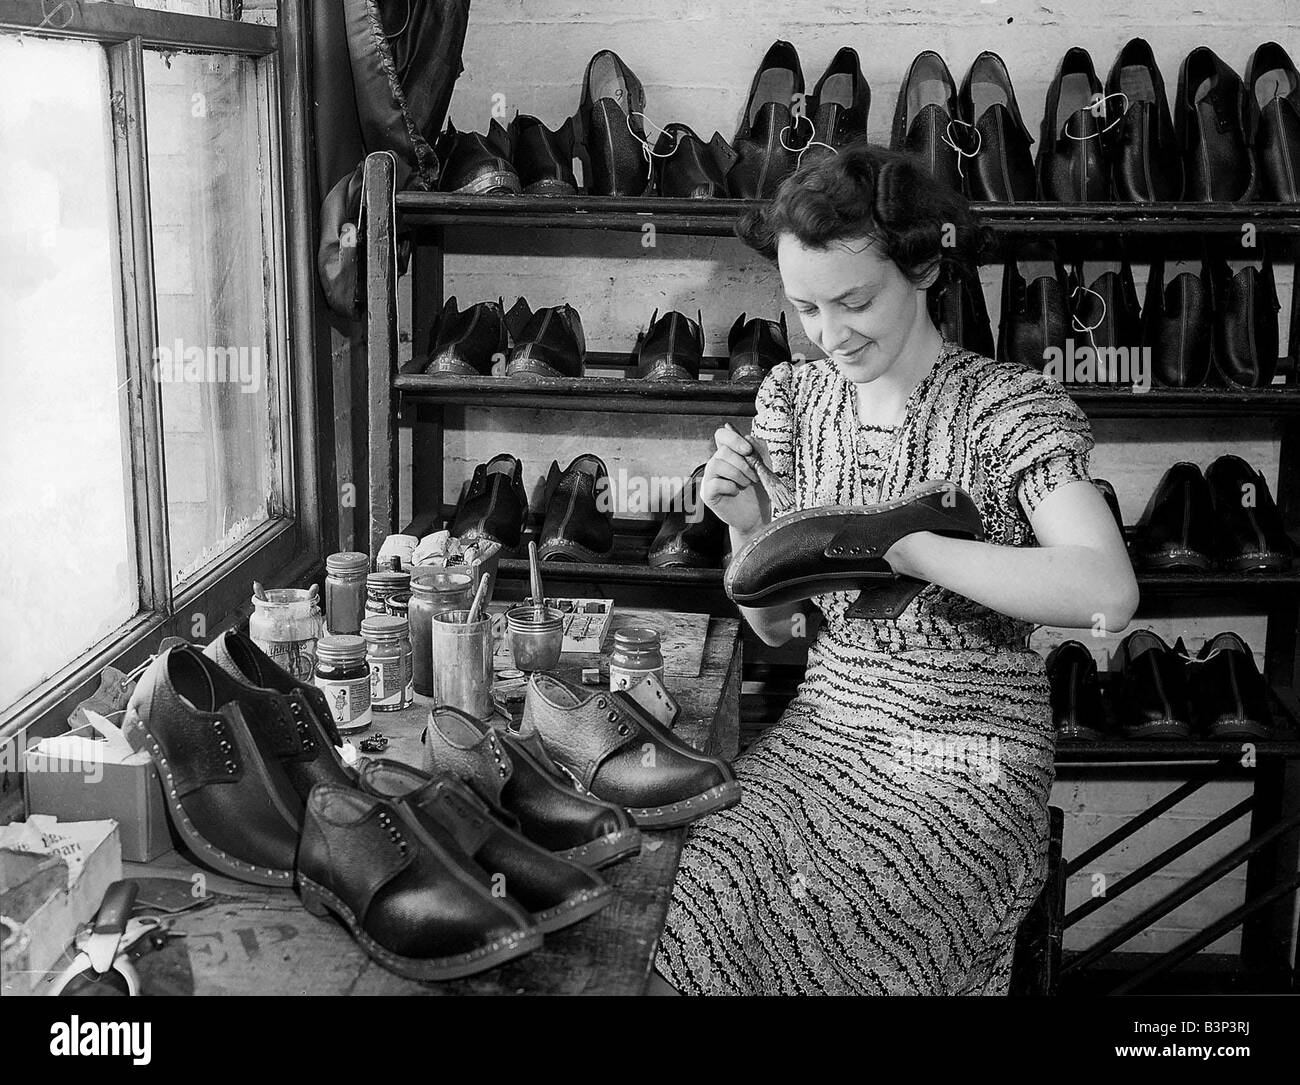 Woman Shoe Maker Women Doing Mens Jobs During The War